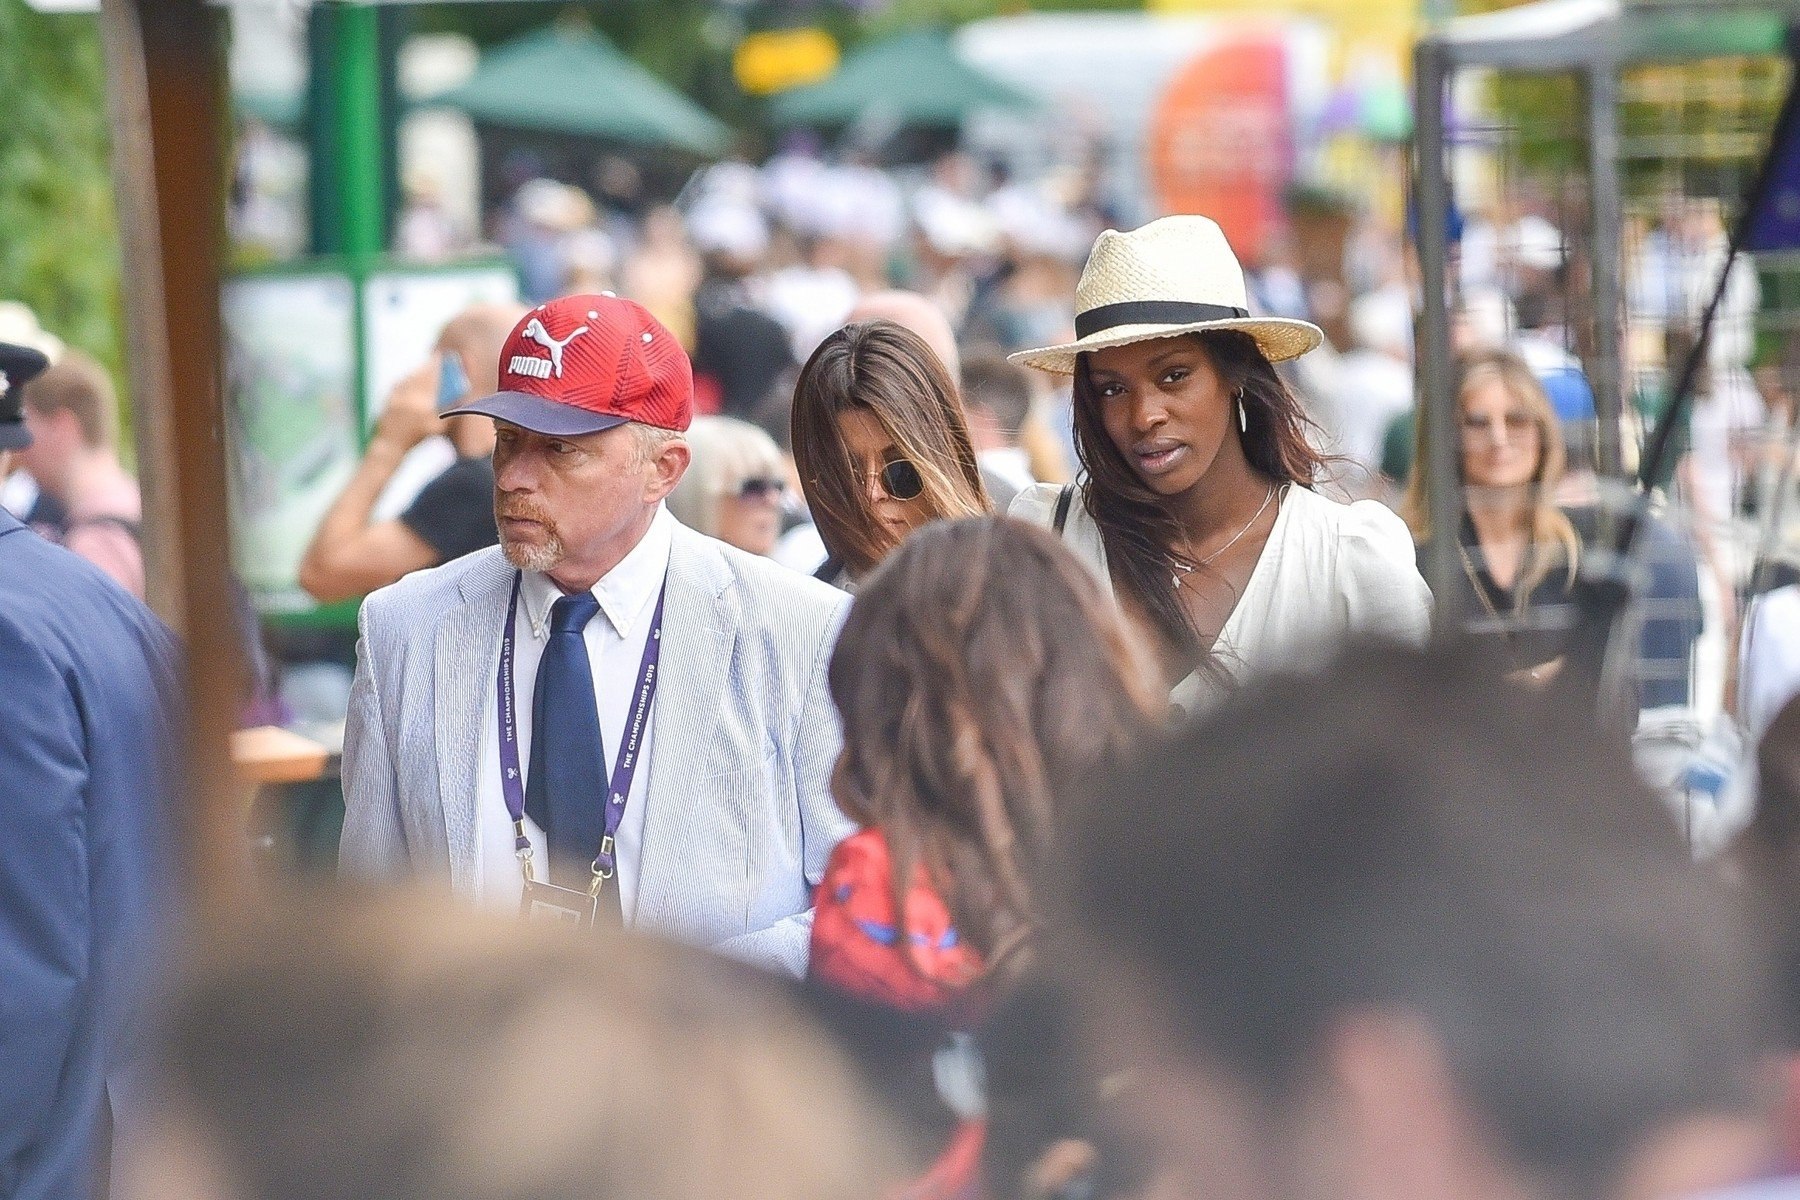 London, UNITED KINGDOM  - Boris Becker meets with rumoured girlfriend Layla Powell inside The Championships at Wimbledon.  BACKGRID UK 3 JULY 2019, Image: 453790359, License: Rights-managed, Restrictions: , Model Release: no, Credit line: Profimedia, Backgrid UK